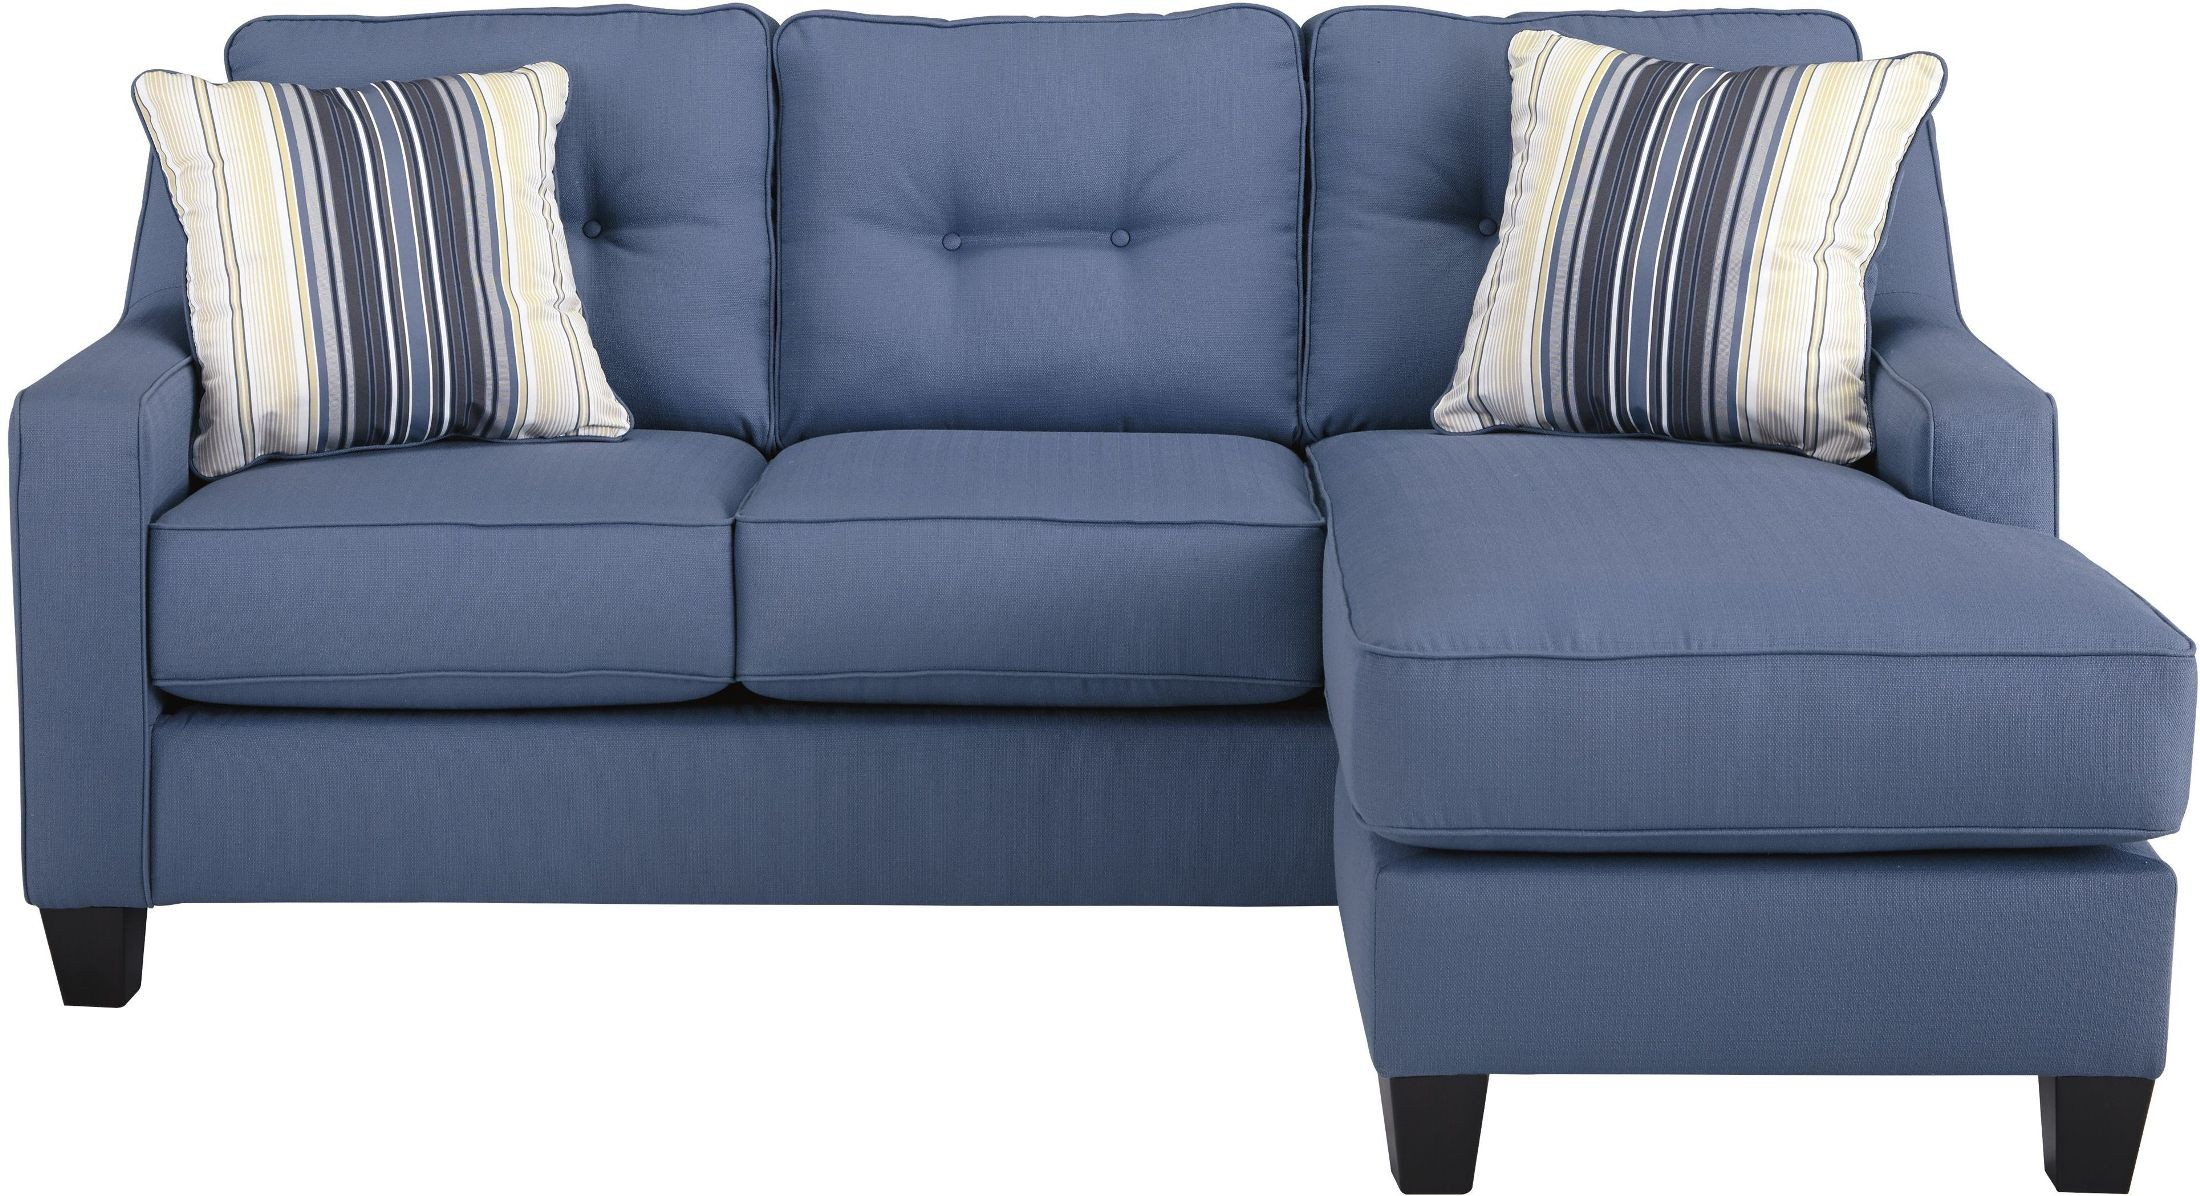 Aldie Nuvella Blue Sofa Chaise From Ashley Coleman Furniture